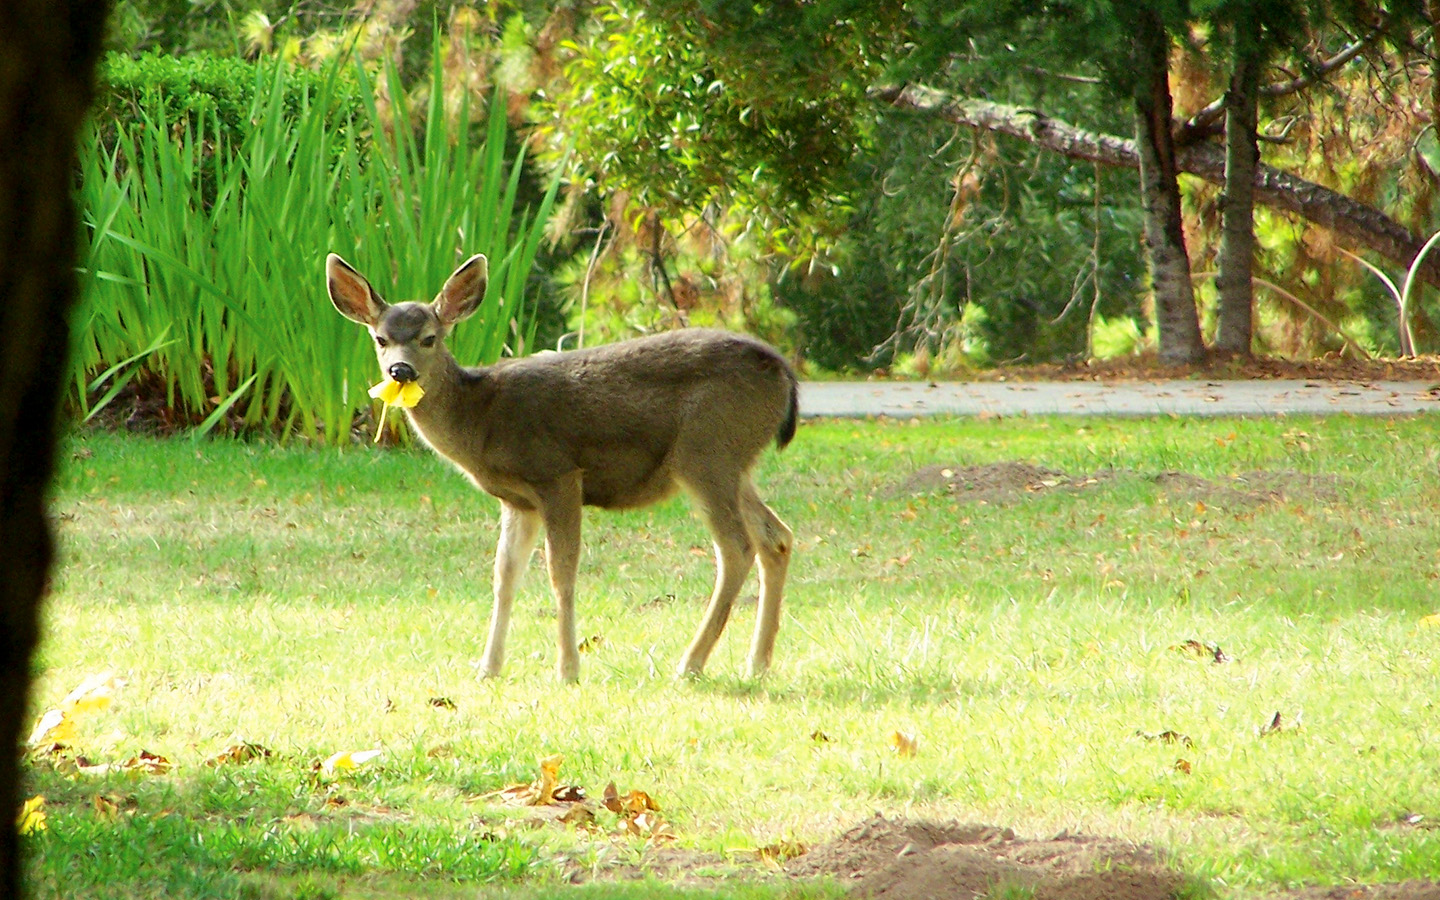 Wildlife visitors on campus